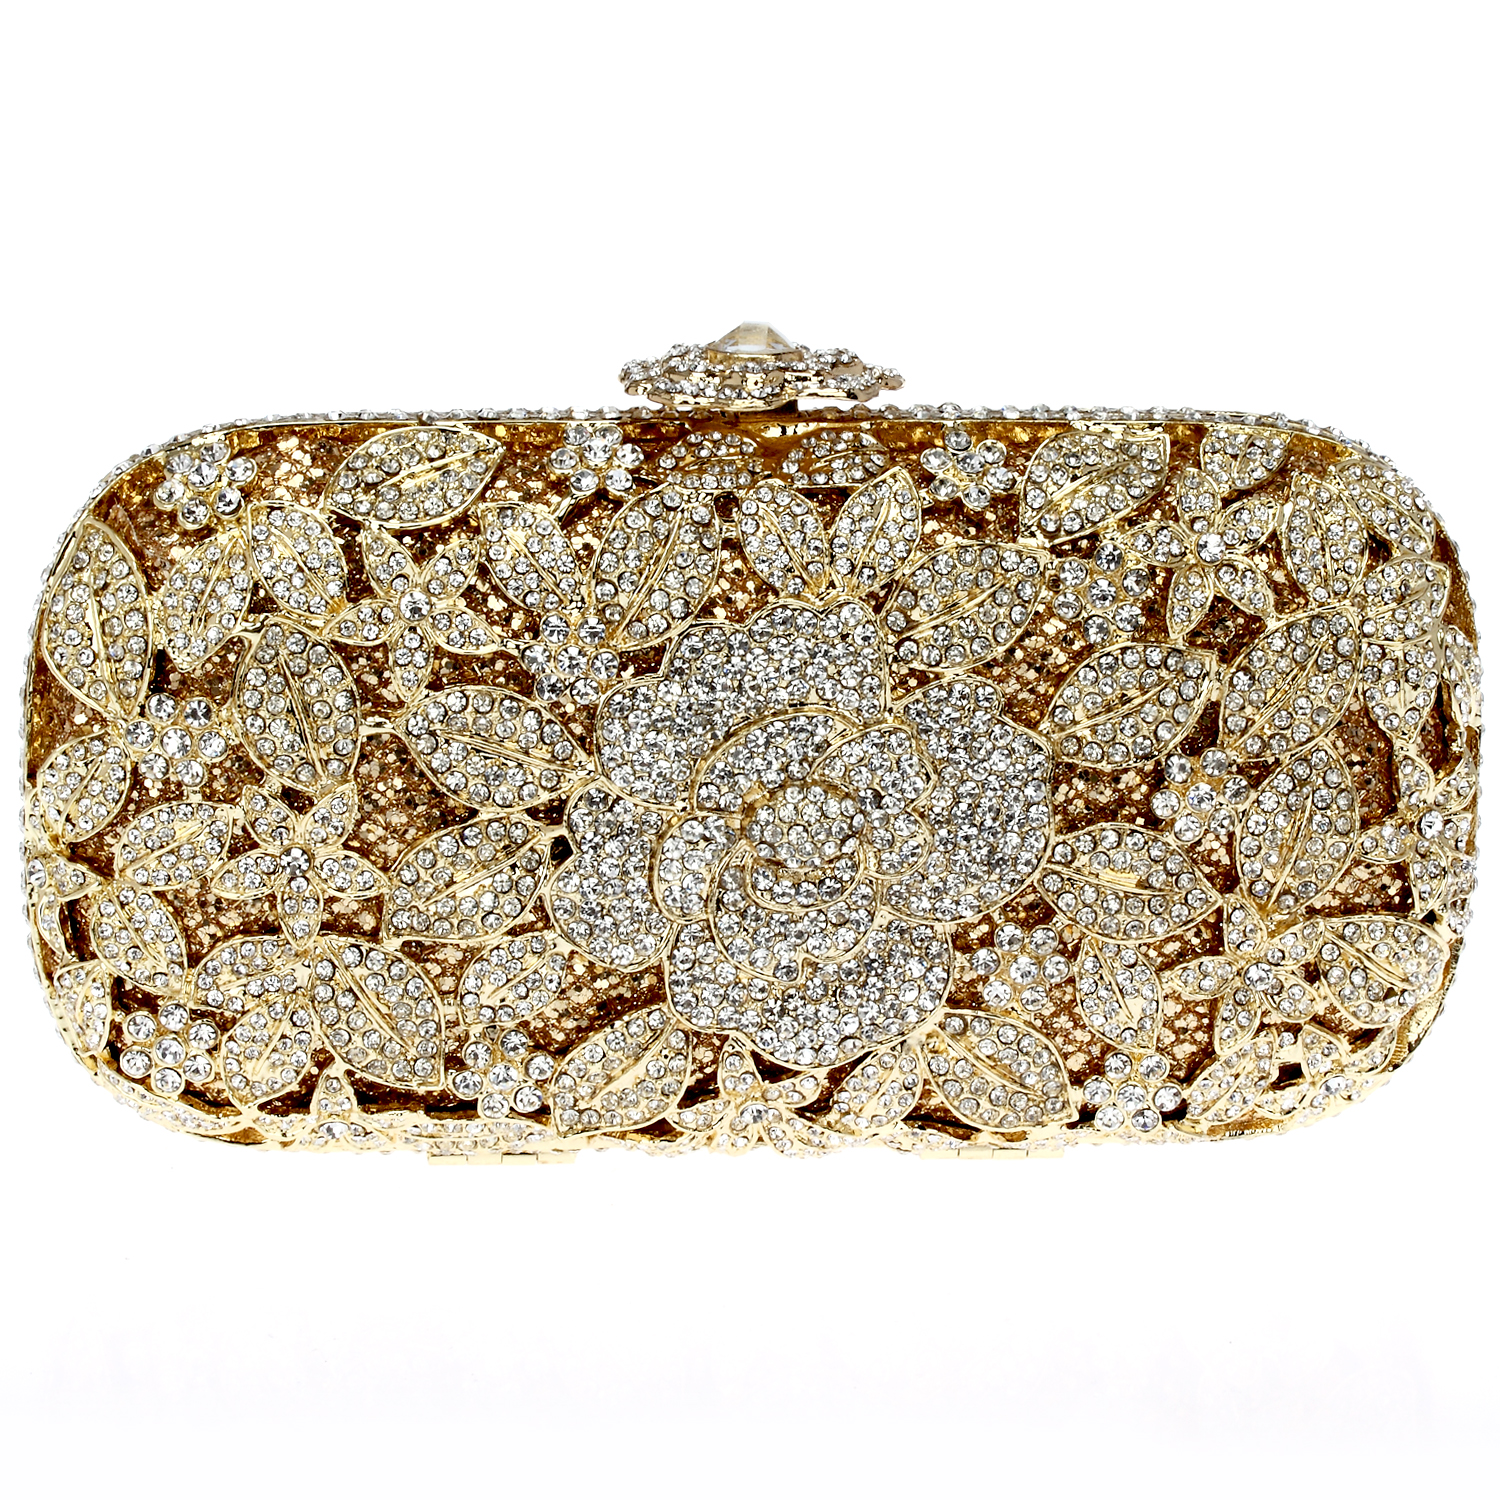 2015 new arrival brand new gold banquet bag fashion full mounting rhinestone top quality night clutch()